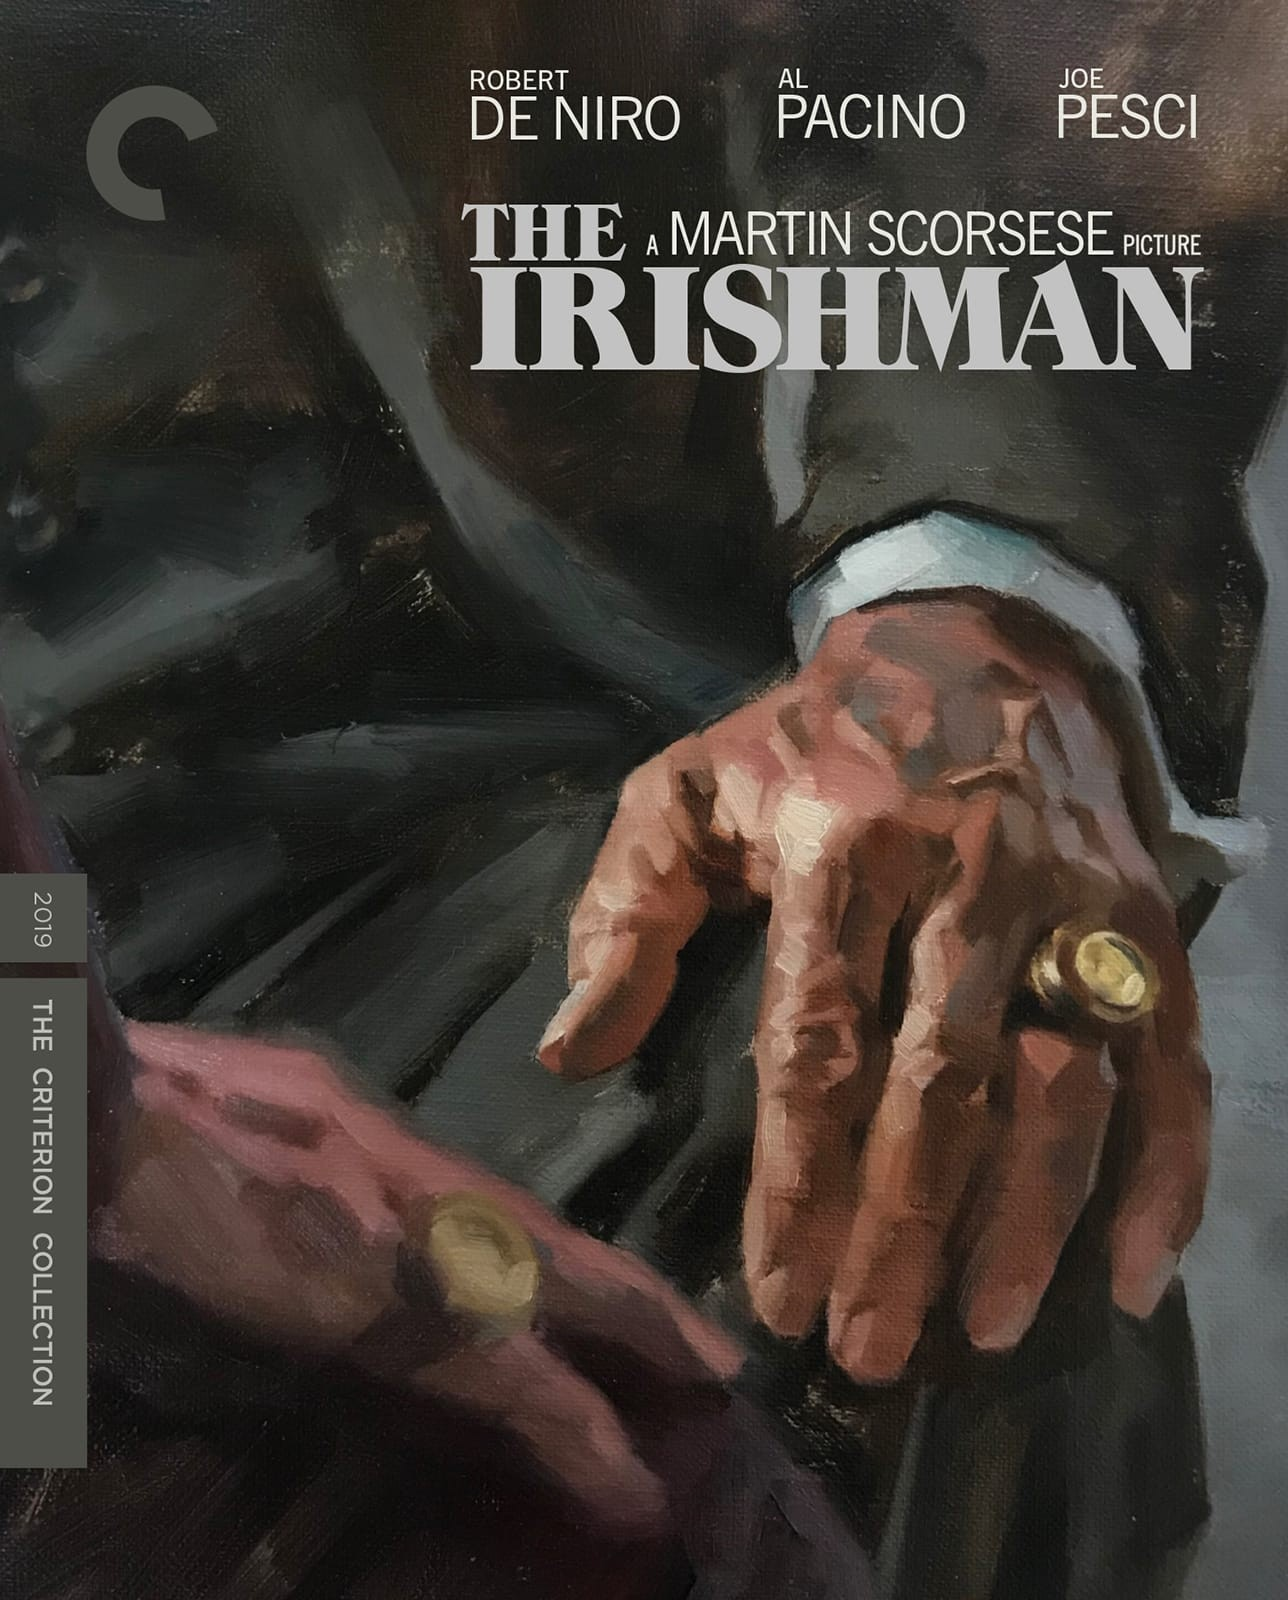 The Irishman (2019) | The Criterion Collection